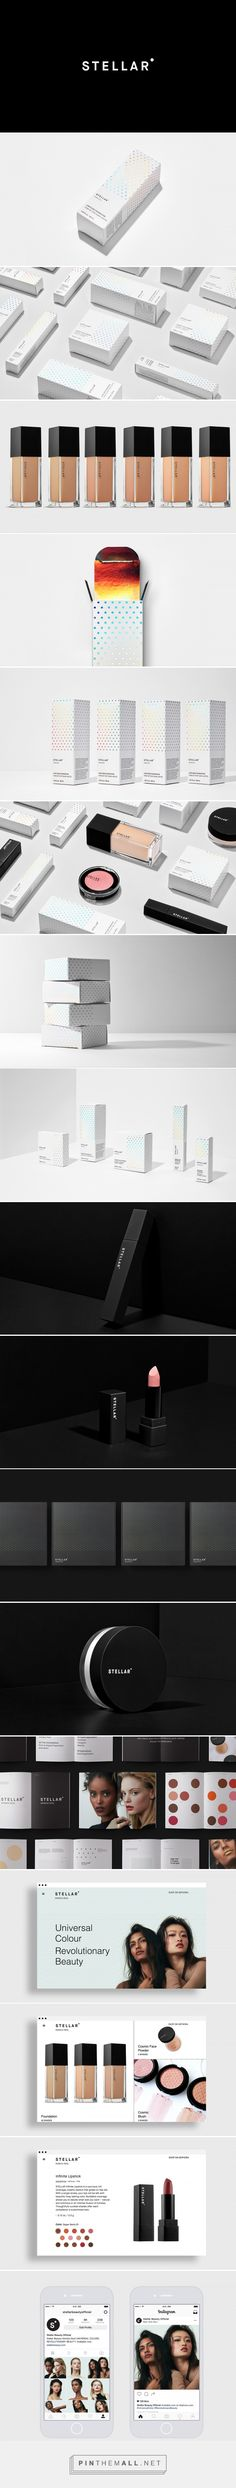 Stellar Cosmetics Branding and Packaging by Luis Coderque | Fivestar Branding Agency – Design and Branding Agency & Curated Inspiration Gallery